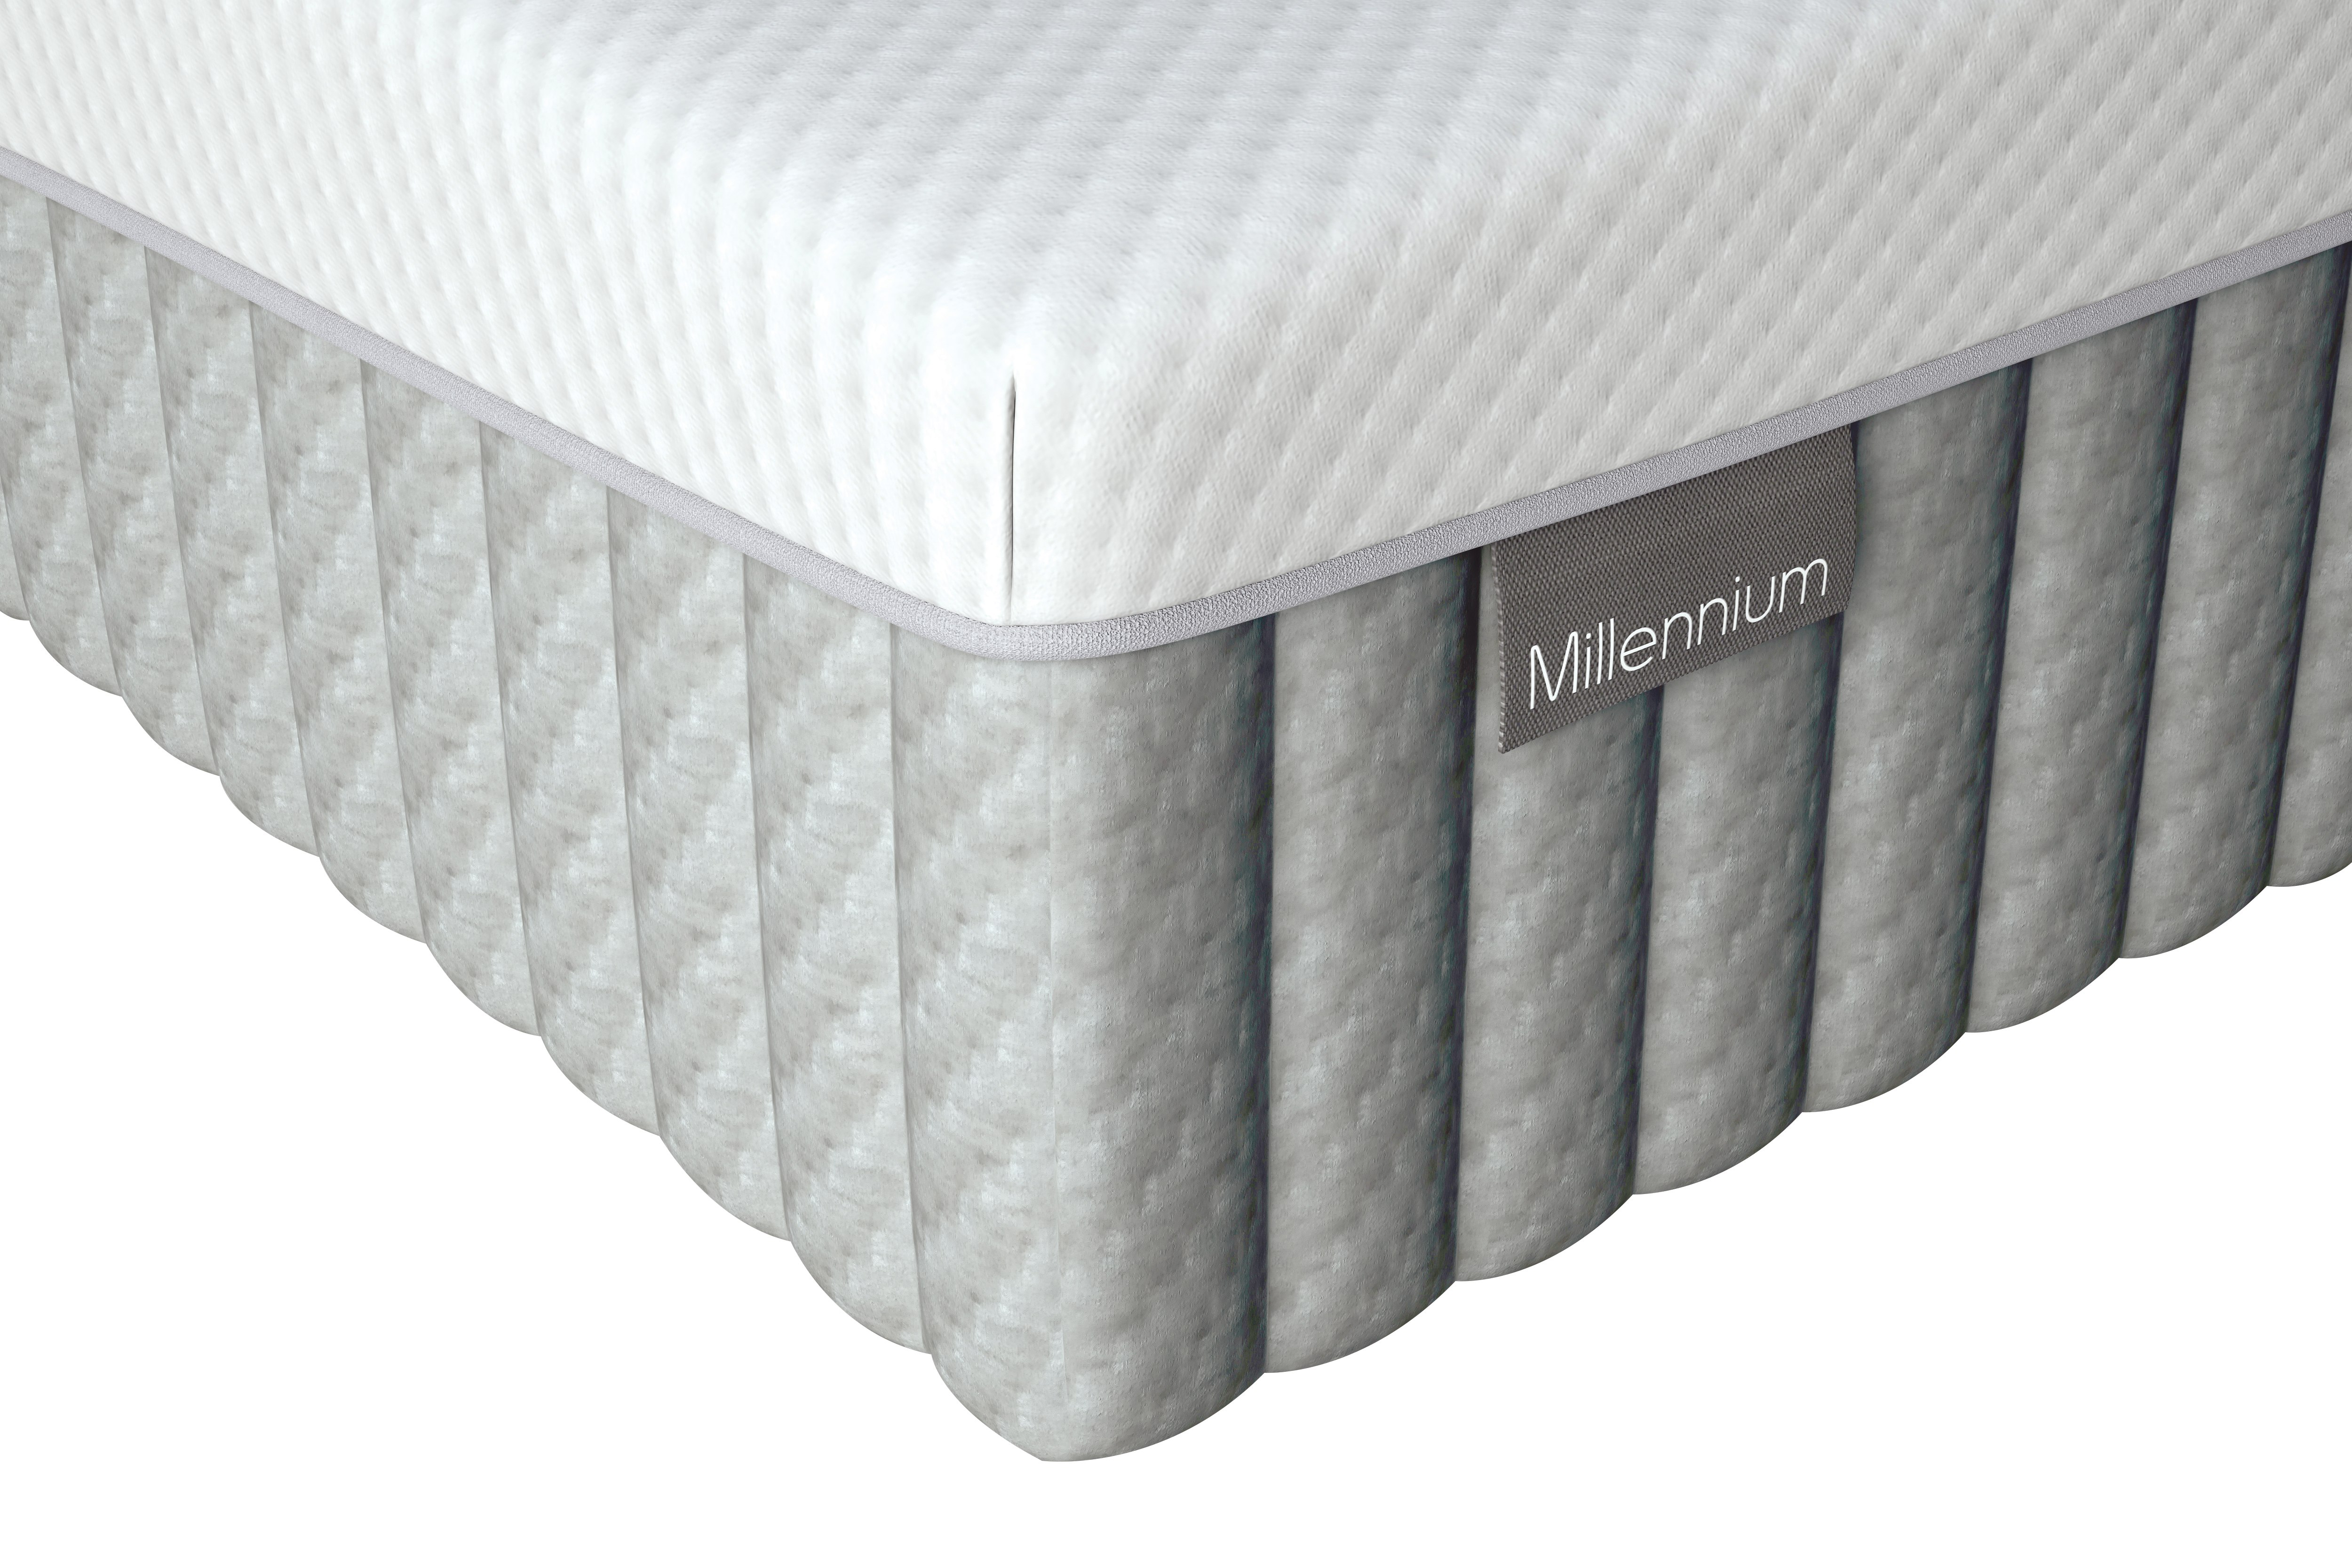 Dunlopillo millennium mattress available from the world of beds, doncaster